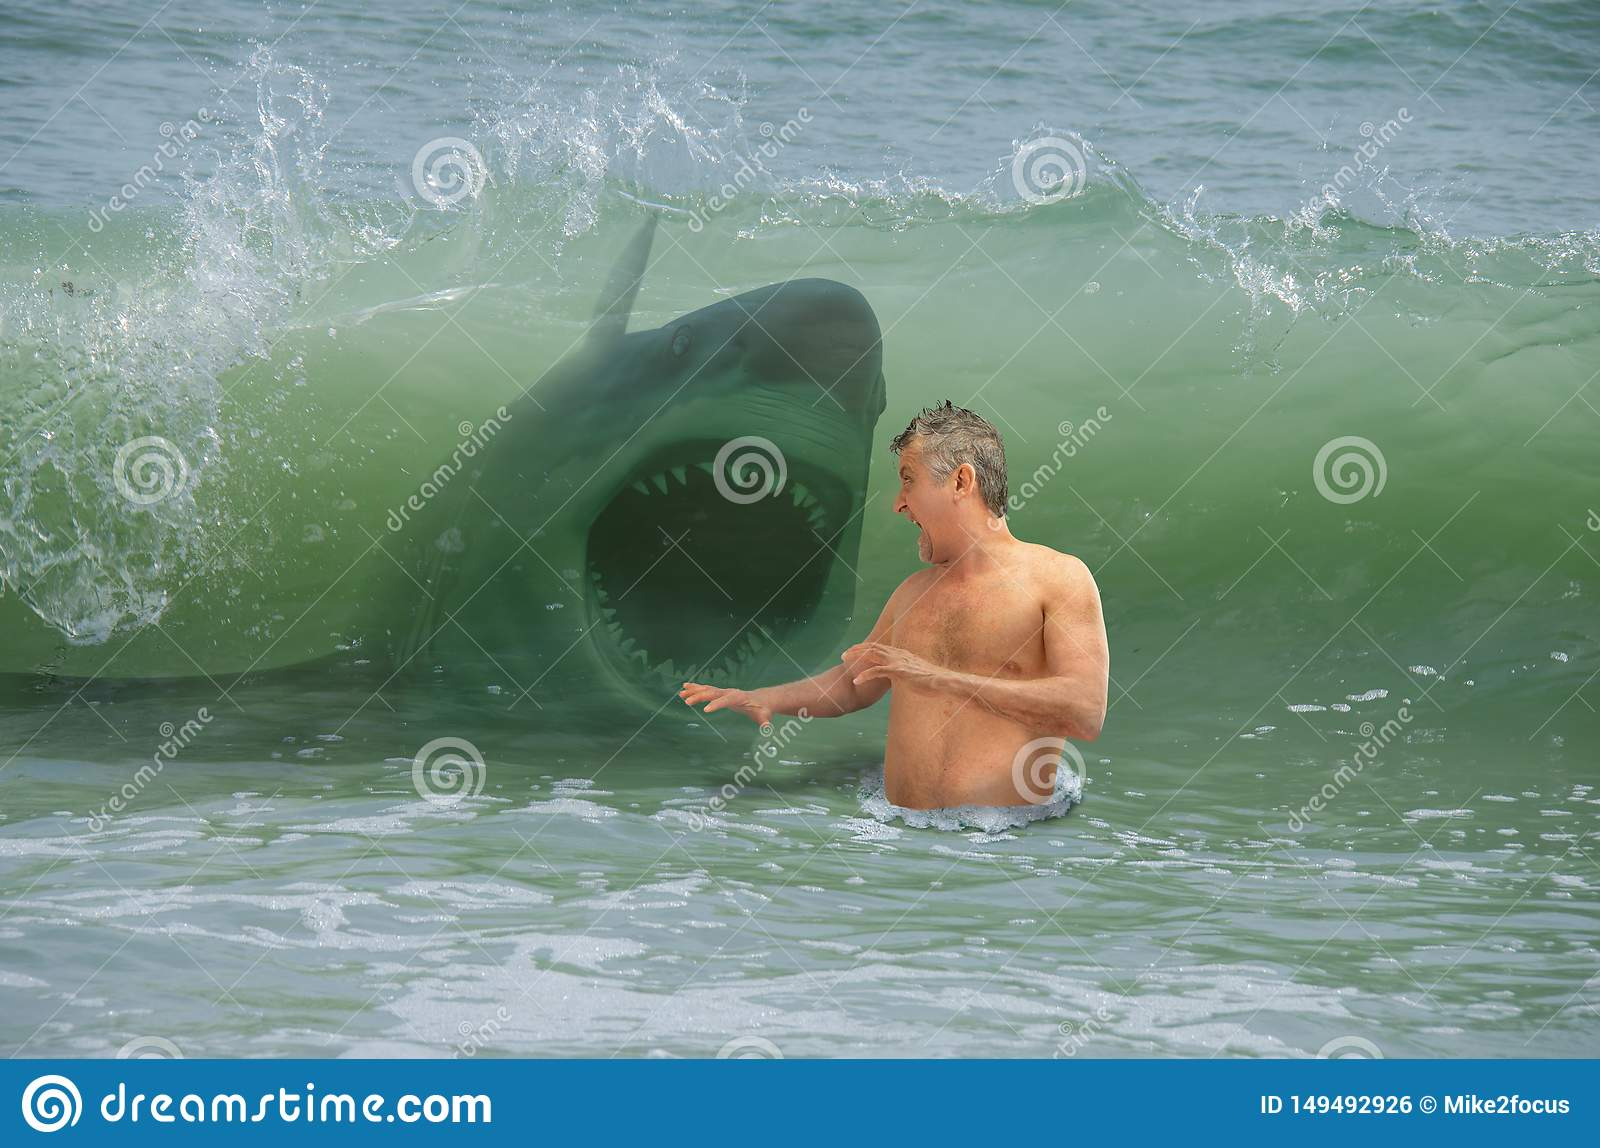 Frightened swimmer man getting hit by wave with attacking shark